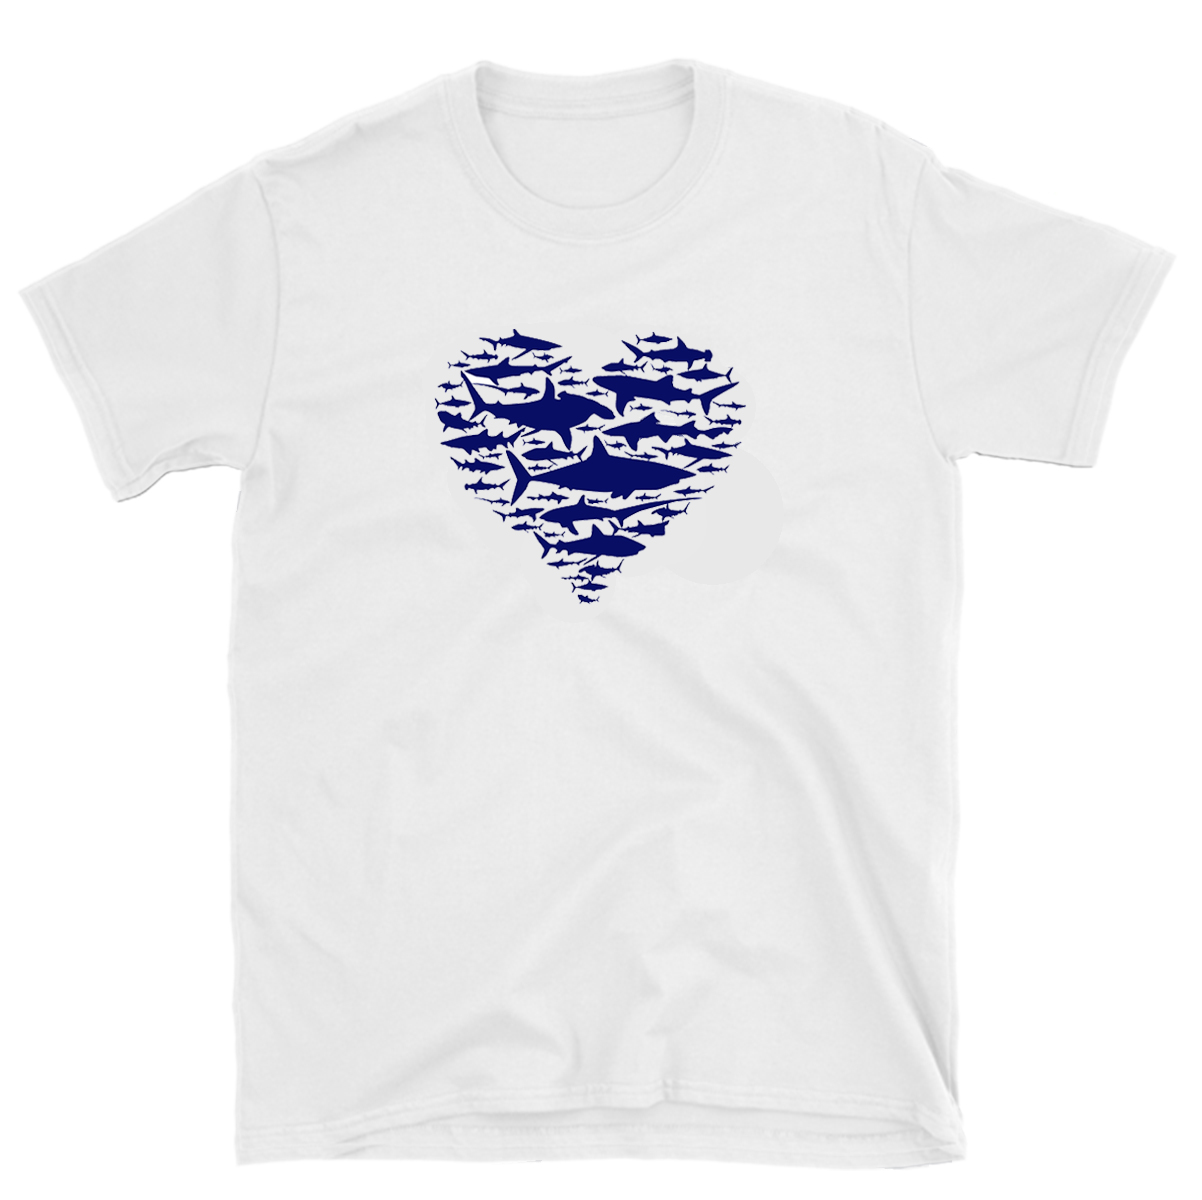 """2356836e In love with Sharks"""" T-shirt (White Edition) – Shark Advocates"""